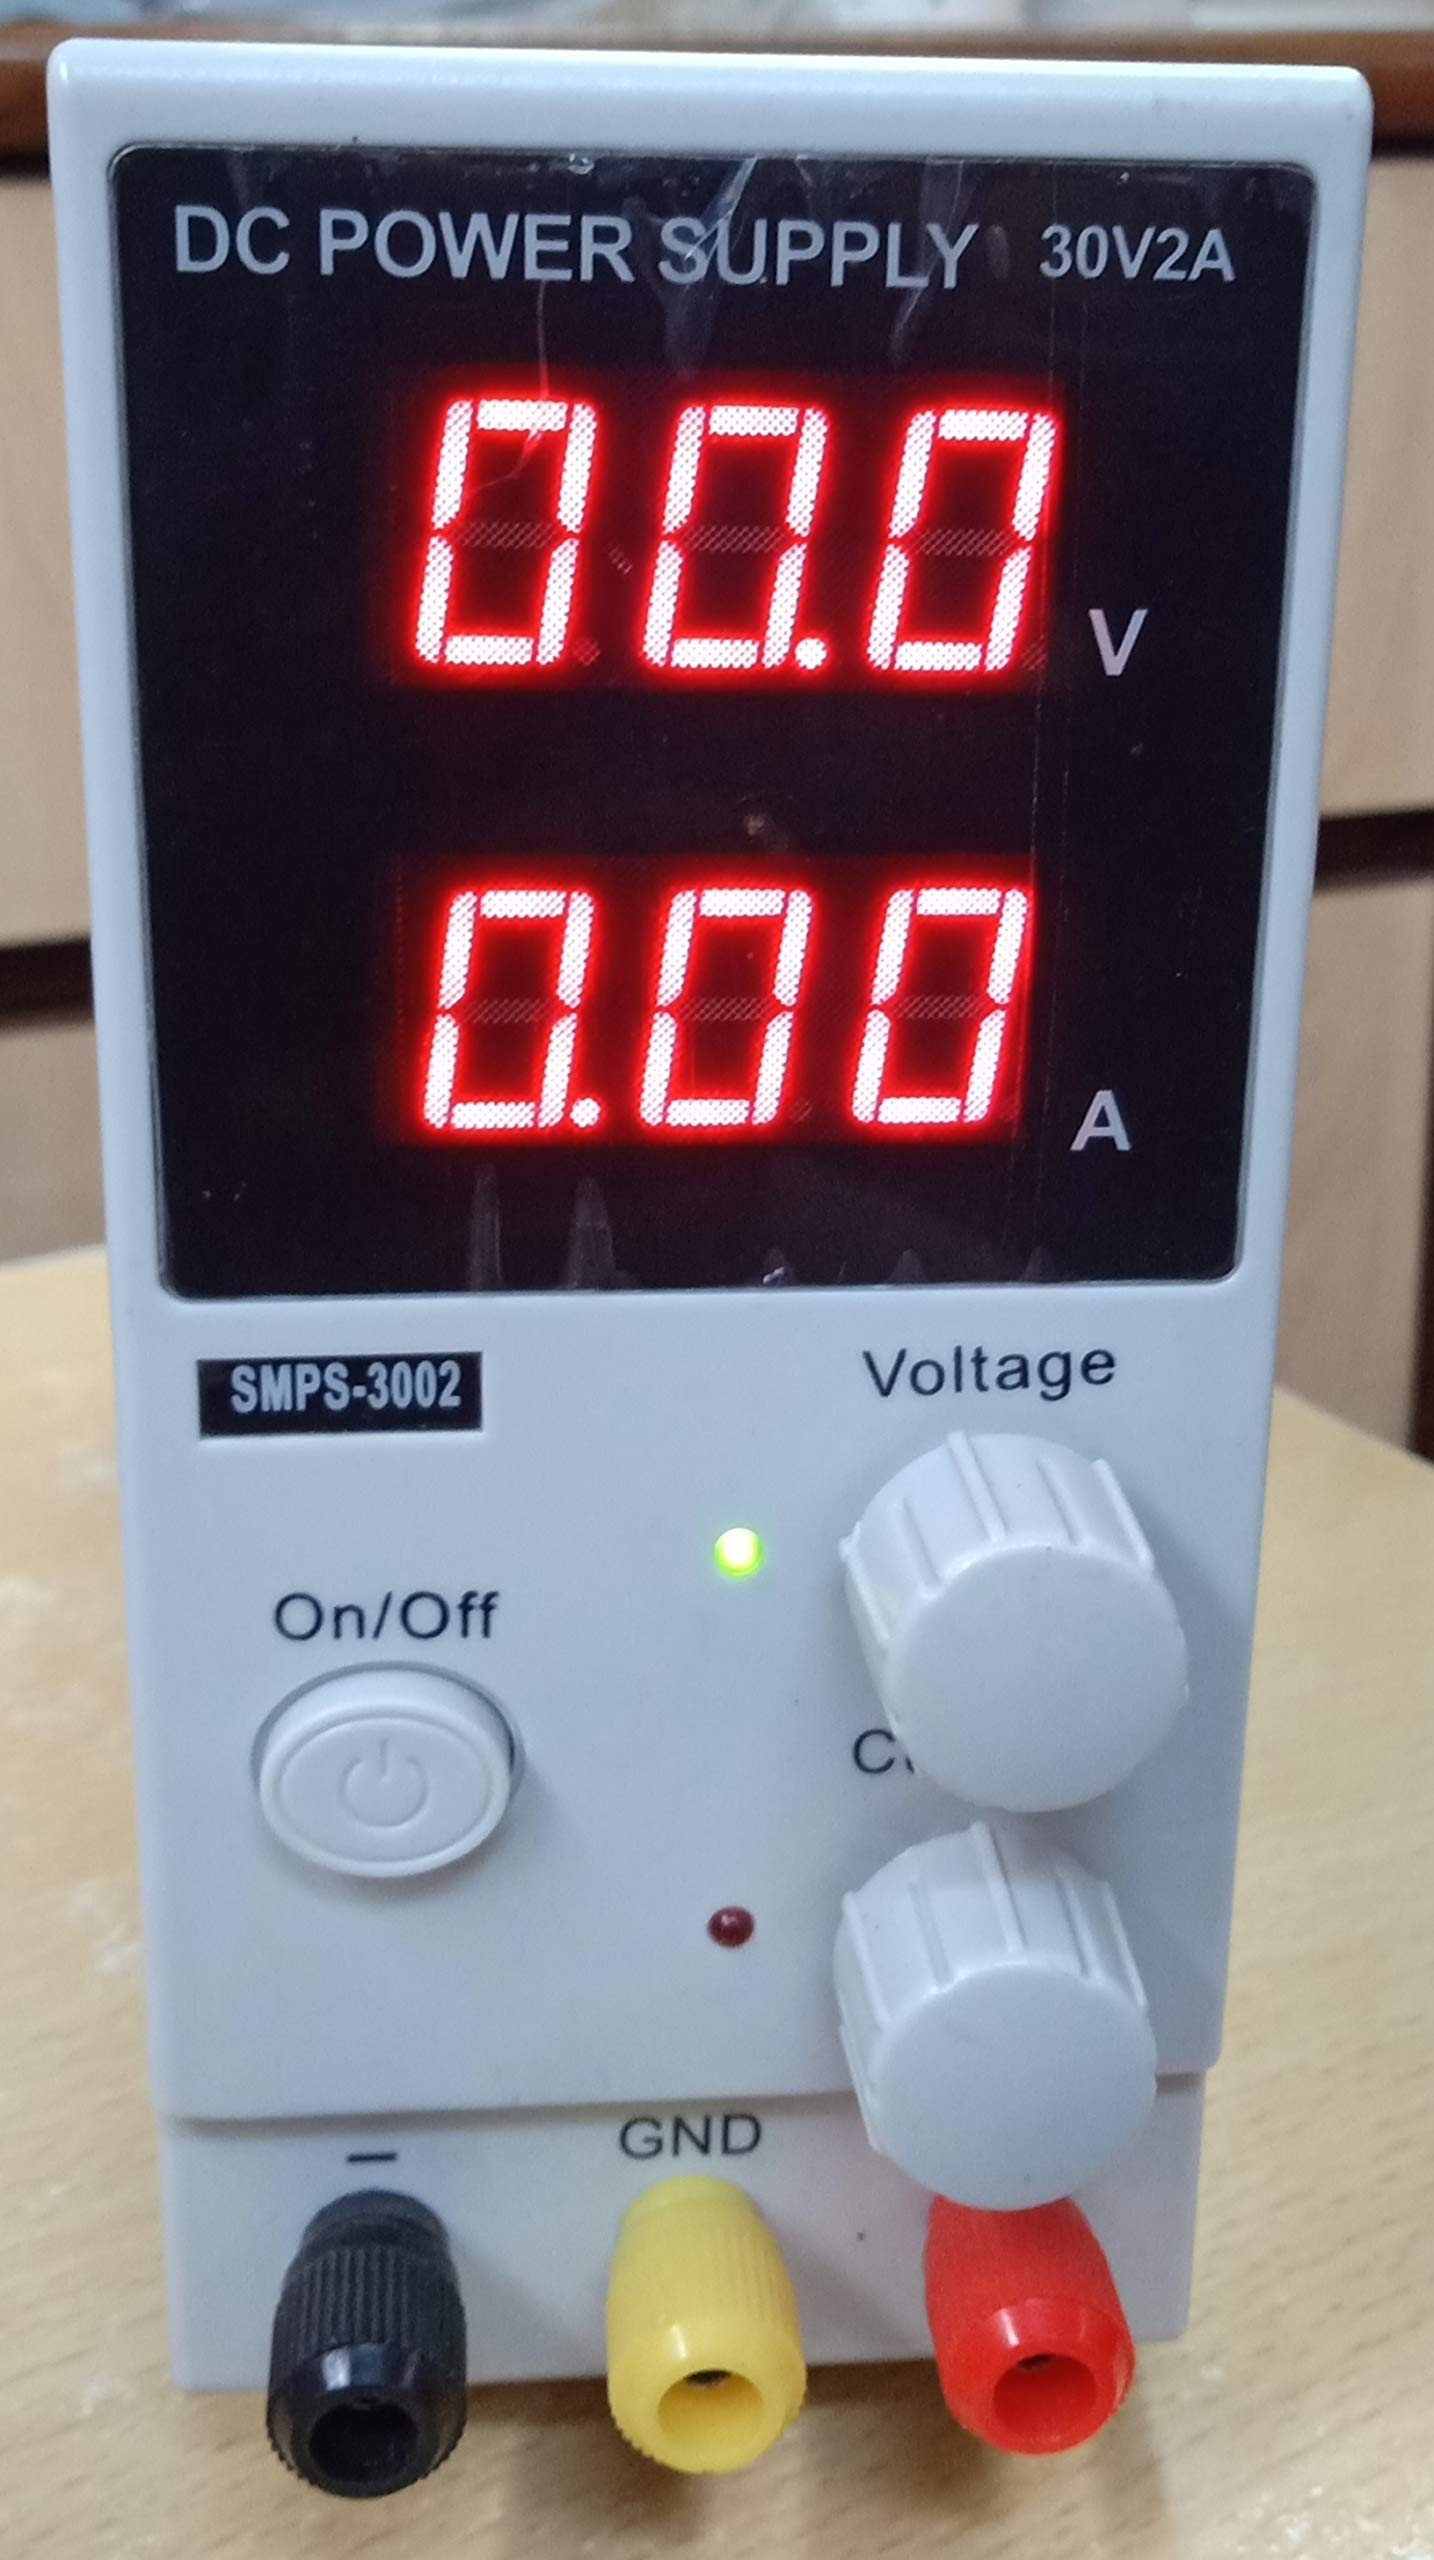 Skyking Mini Switching Regulated Adjustable DC Power Supply SMPS Single  Channel 30V 2A Variable Model No 3002